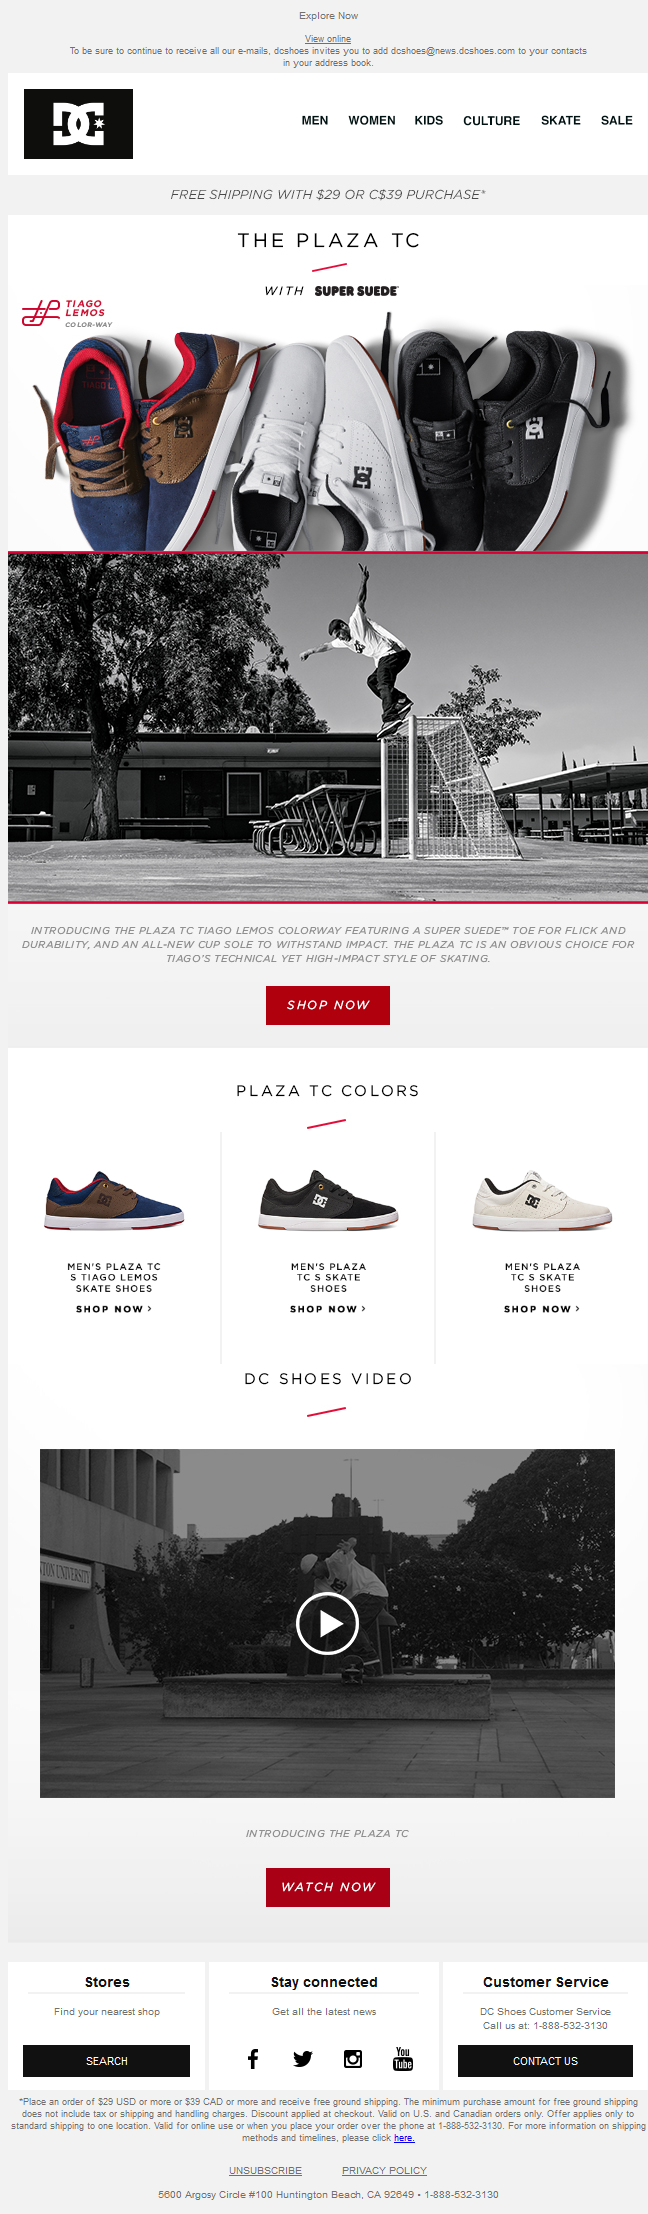 DC Shoes - Introducing the Plaza TC in Tiago Lemos' Signature Color